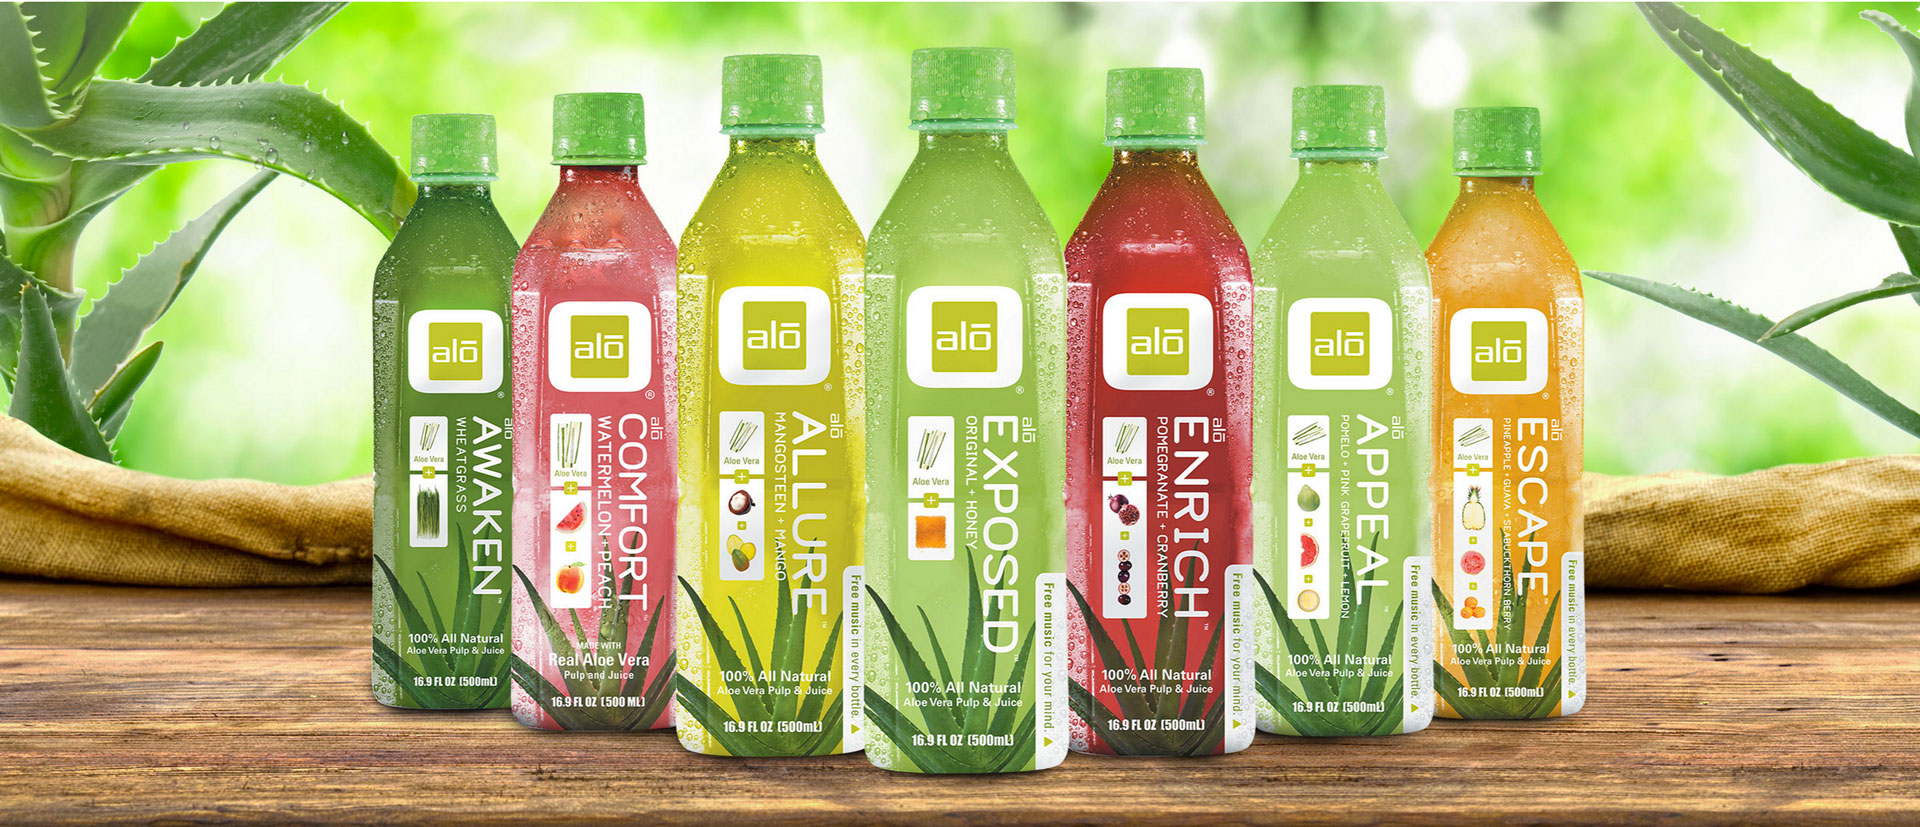 'Natural Drinks, Pure Ingredients With No Excuses'